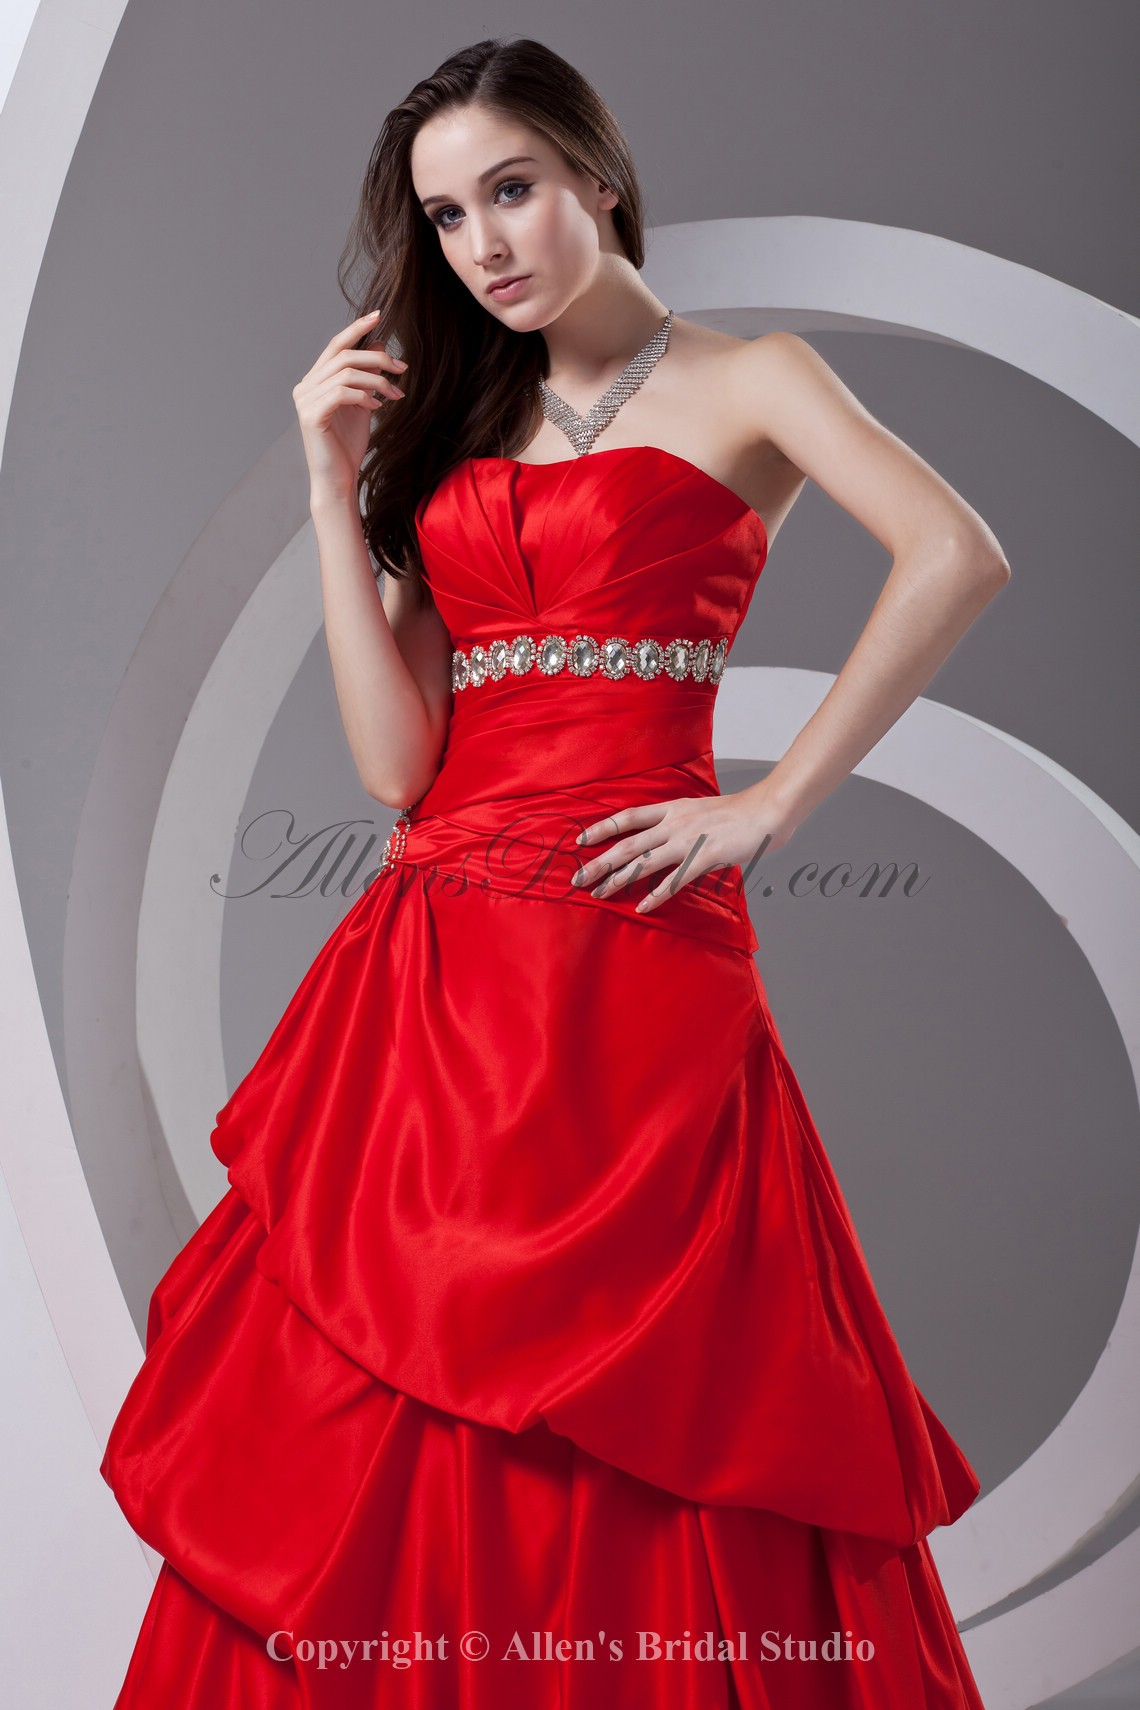 /361-2887/satin-sweetheart-neckline-ball-gown-floor-length-crystals-prom-dress.jpg